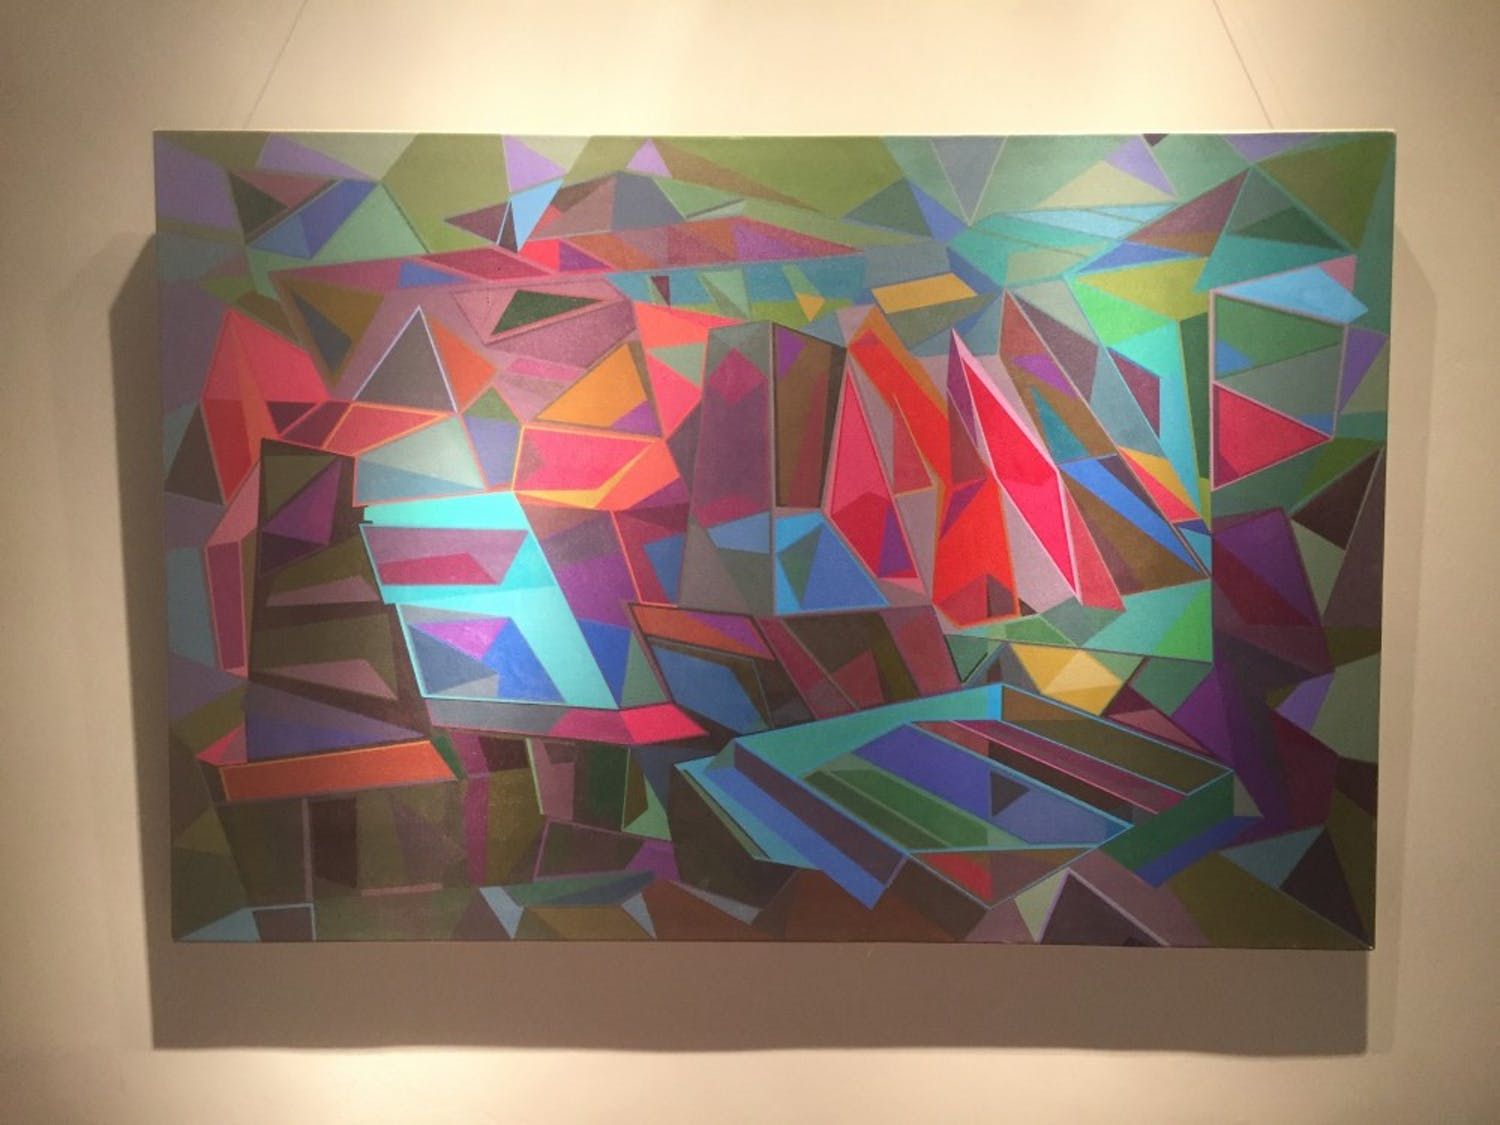 Peter Marin's art is on display at the Horace Williams House.